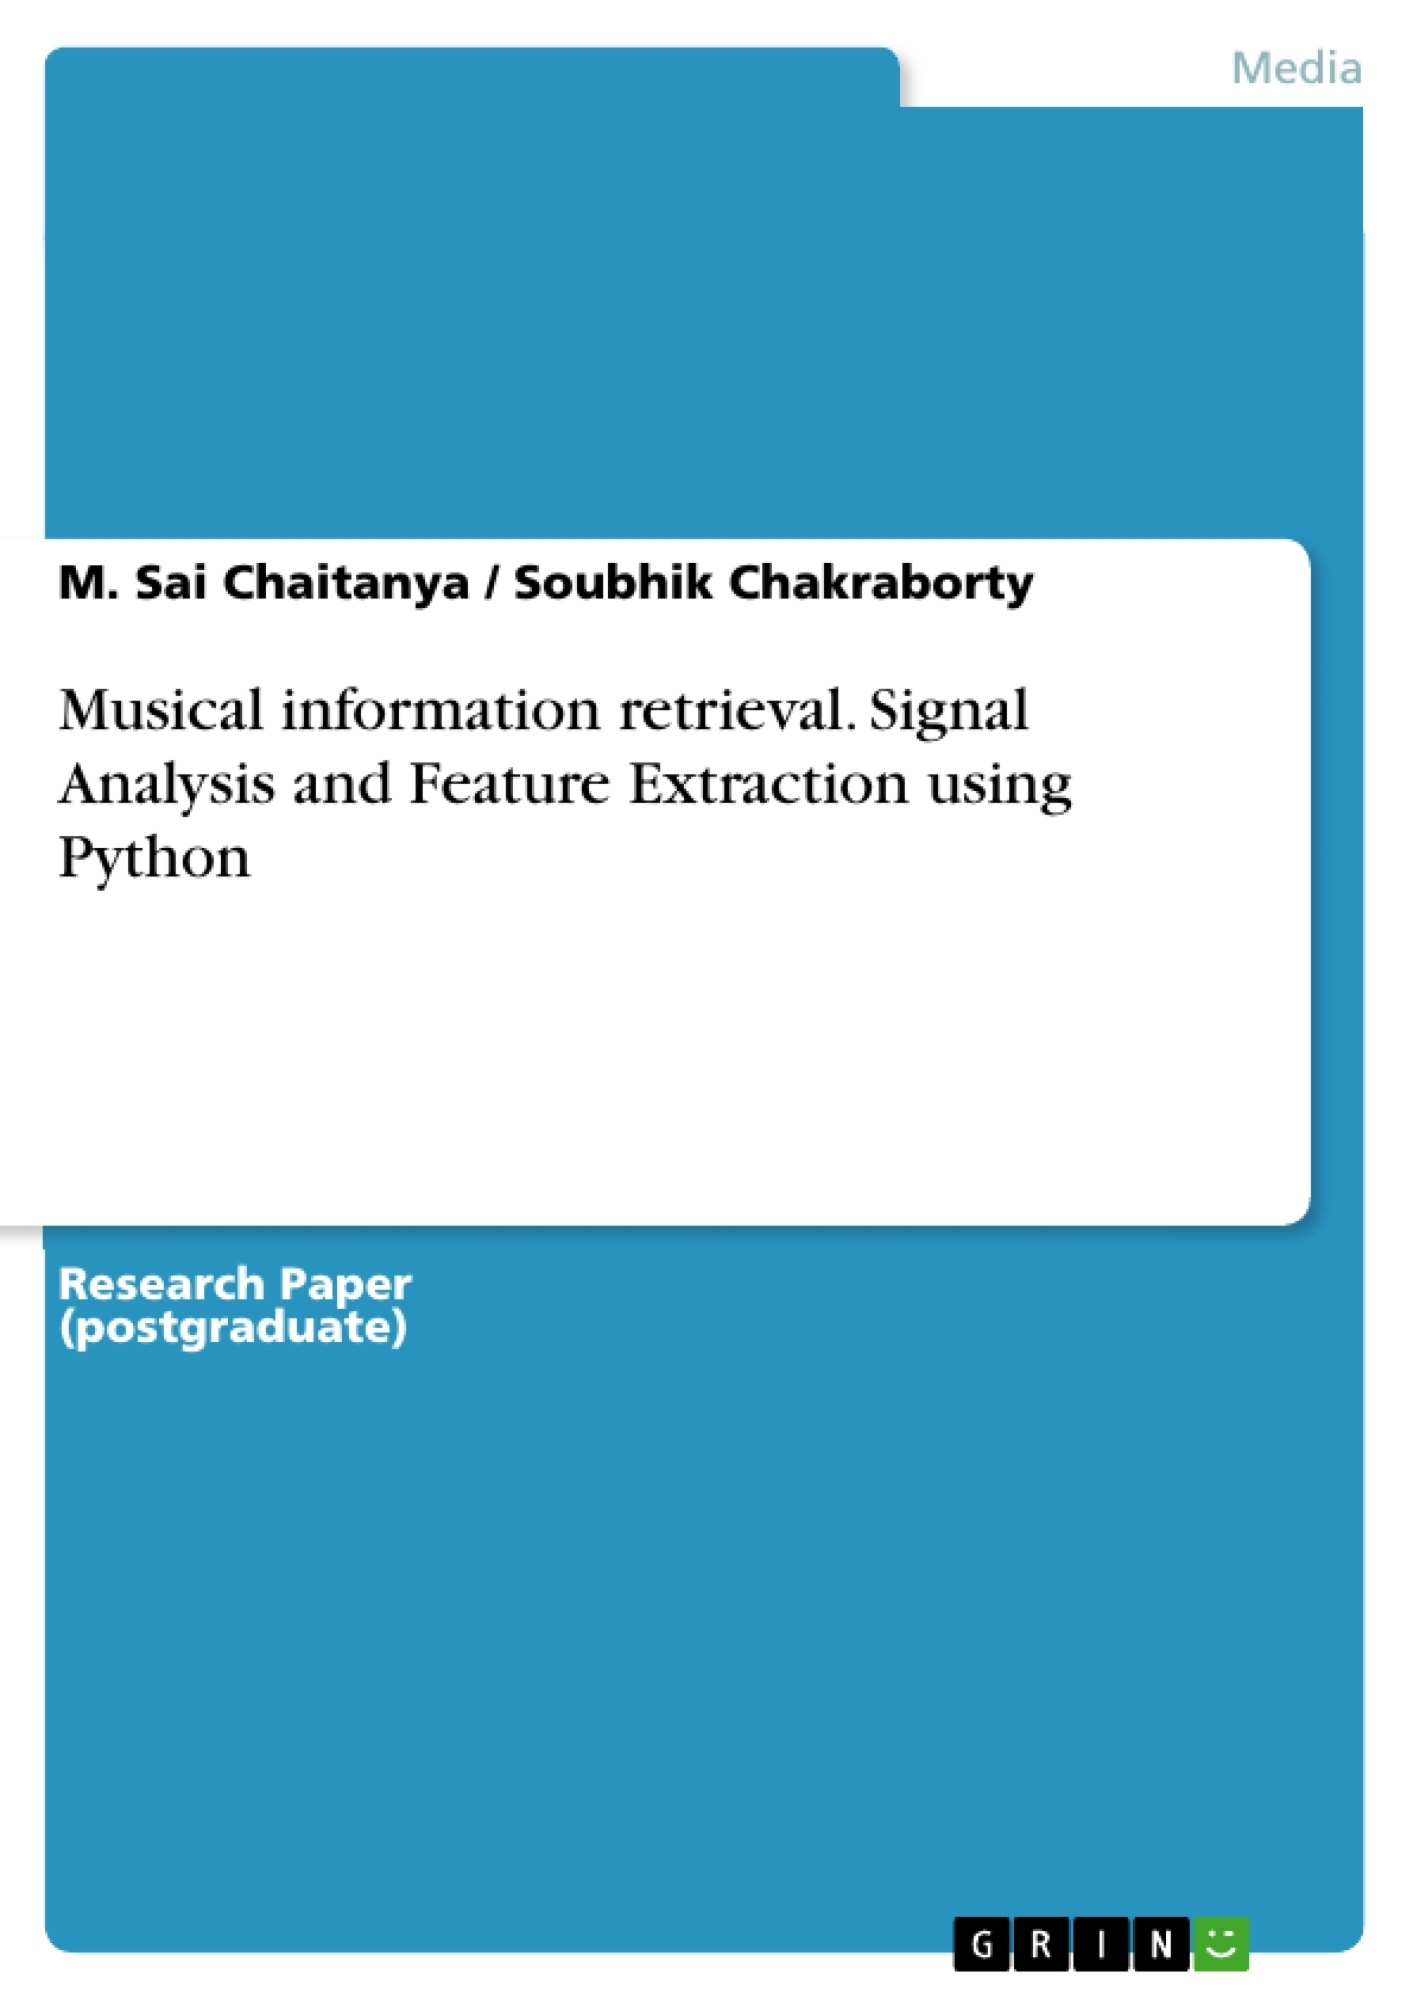 Title: Musical information retrieval. Signal Analysis and Feature Extraction using Python